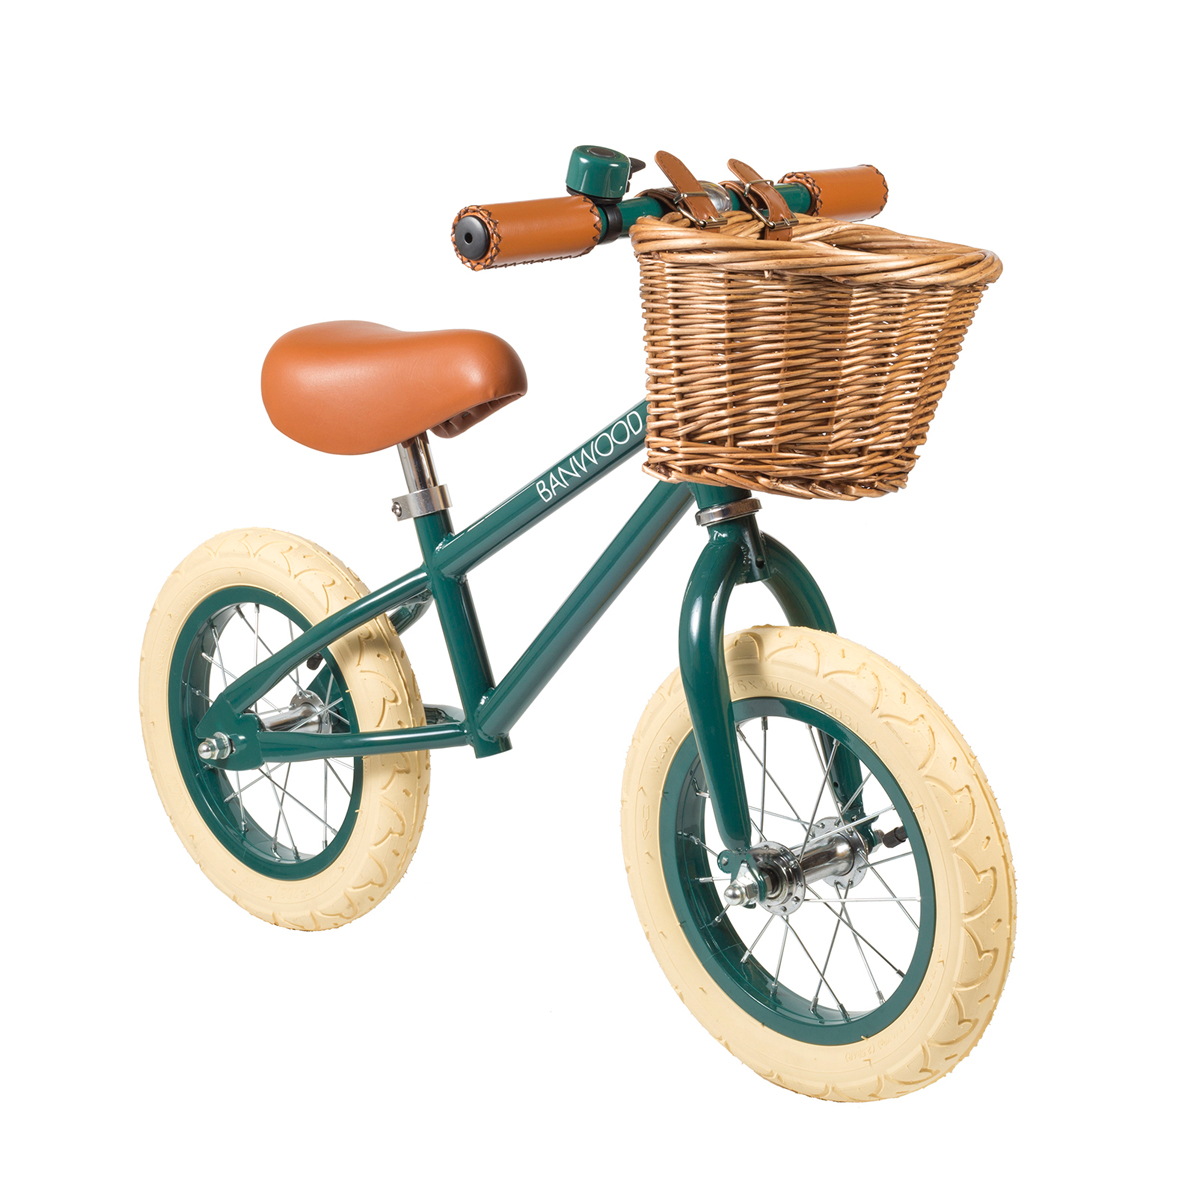 00d0fcd022d Banwood Balance Bike - First Go! | Push Bicycle for Babies